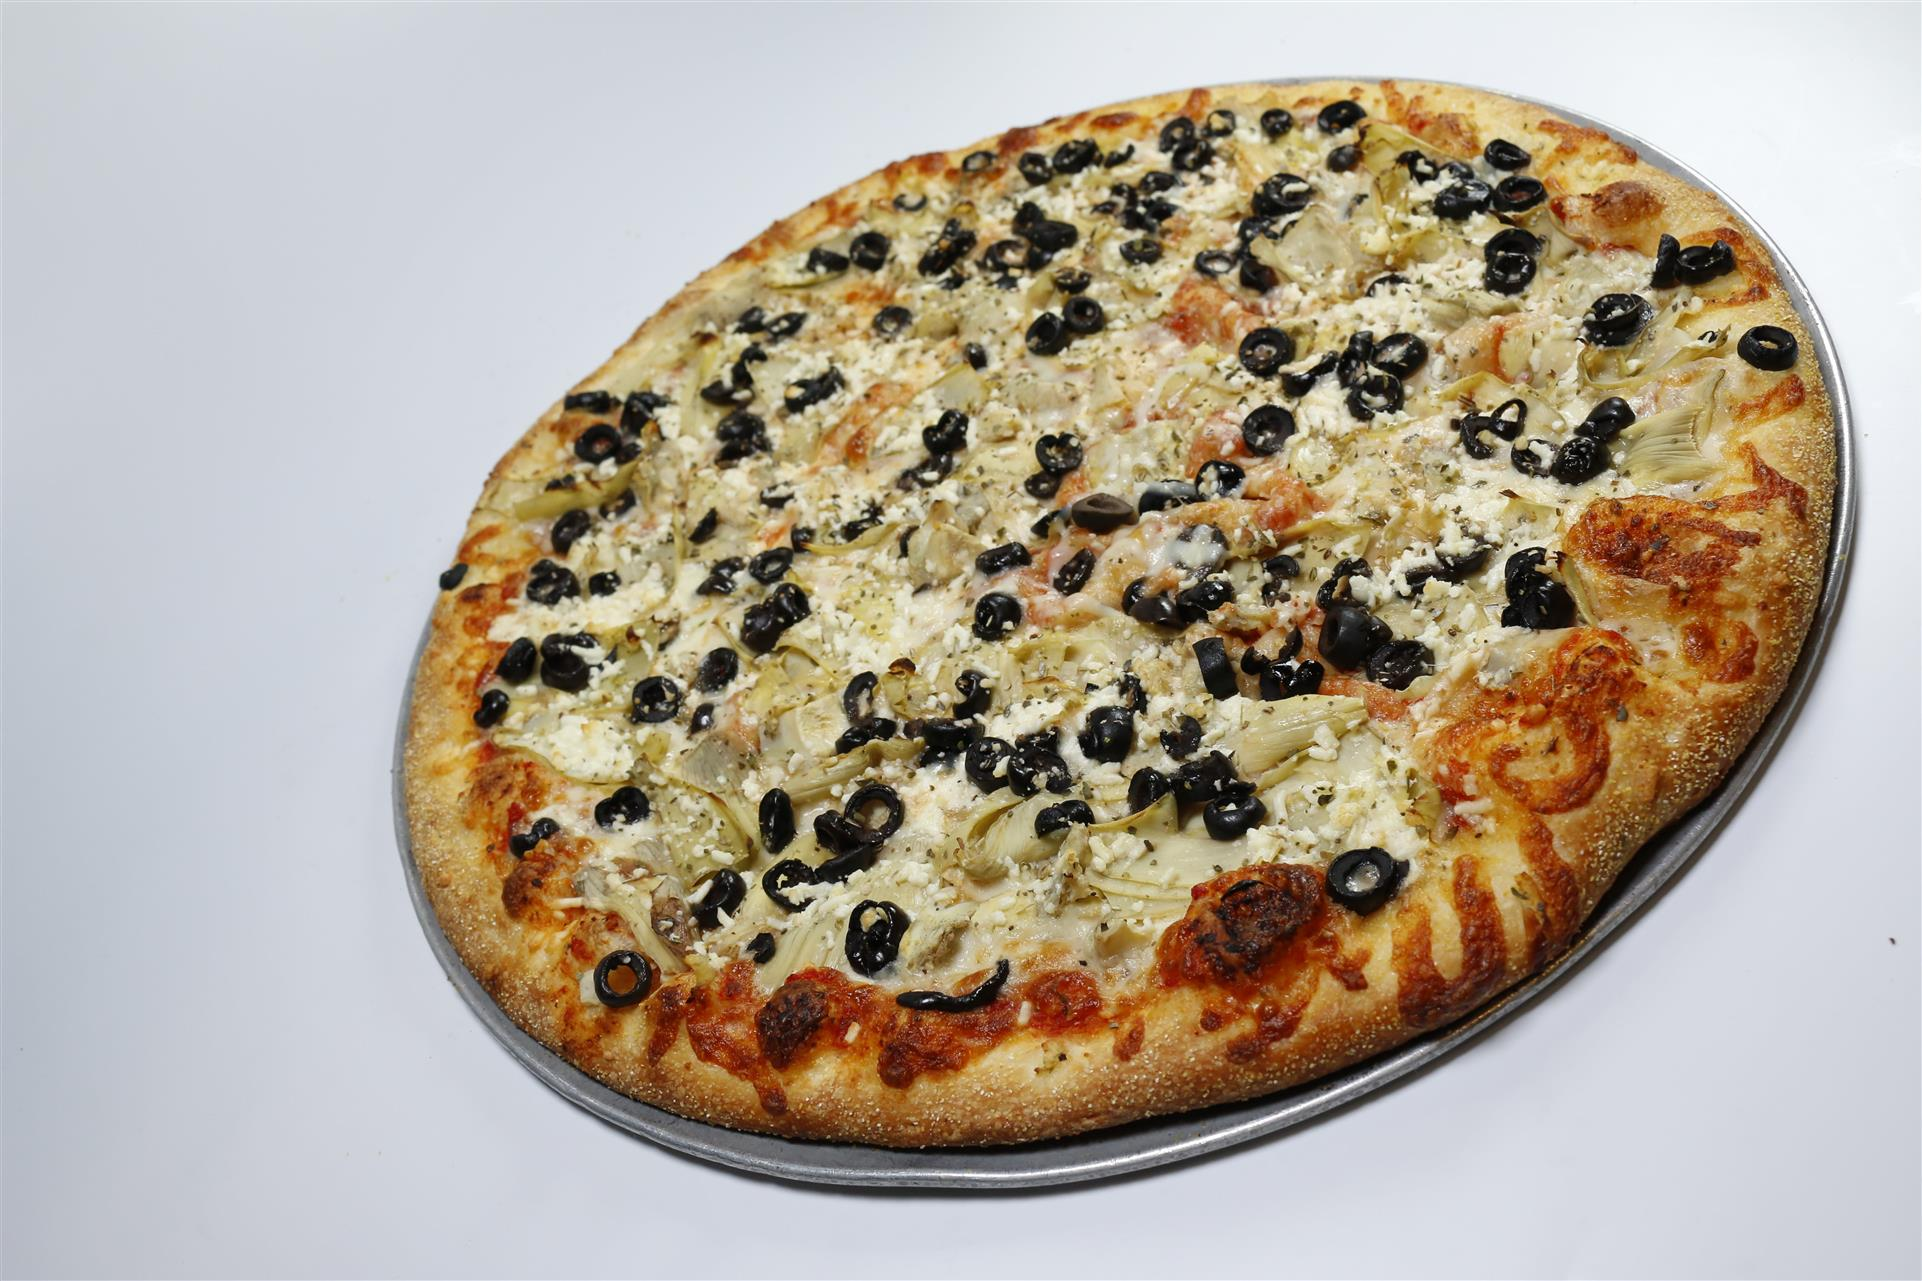 Tomato Sauce, Mozzarella, Artichoke Hearts, Black Olives, Feta Cheese, Oregano